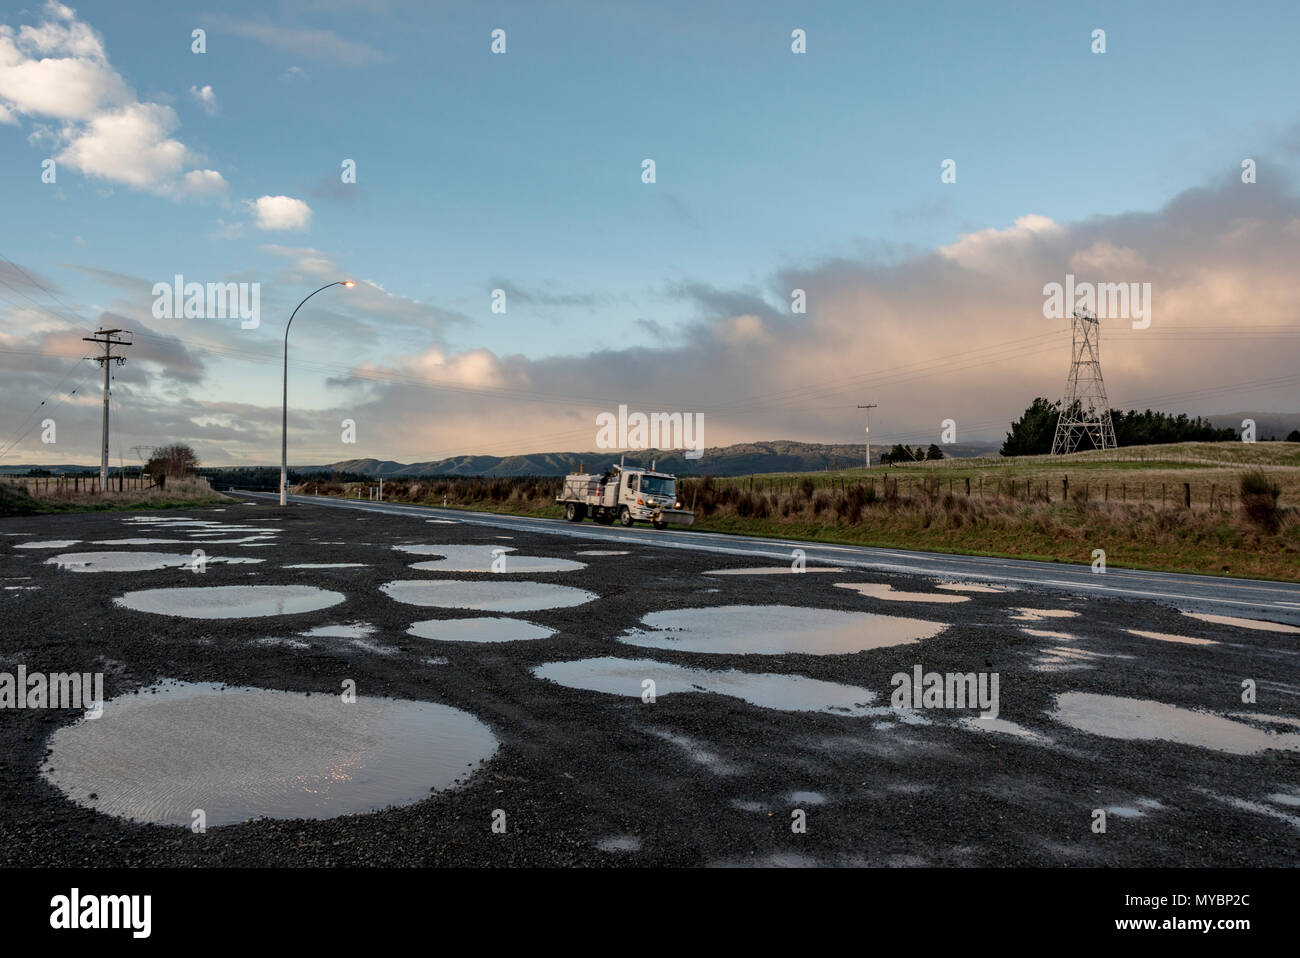 Central North Island, New Zealand 2013. State Highway after winter storm - Stock Image